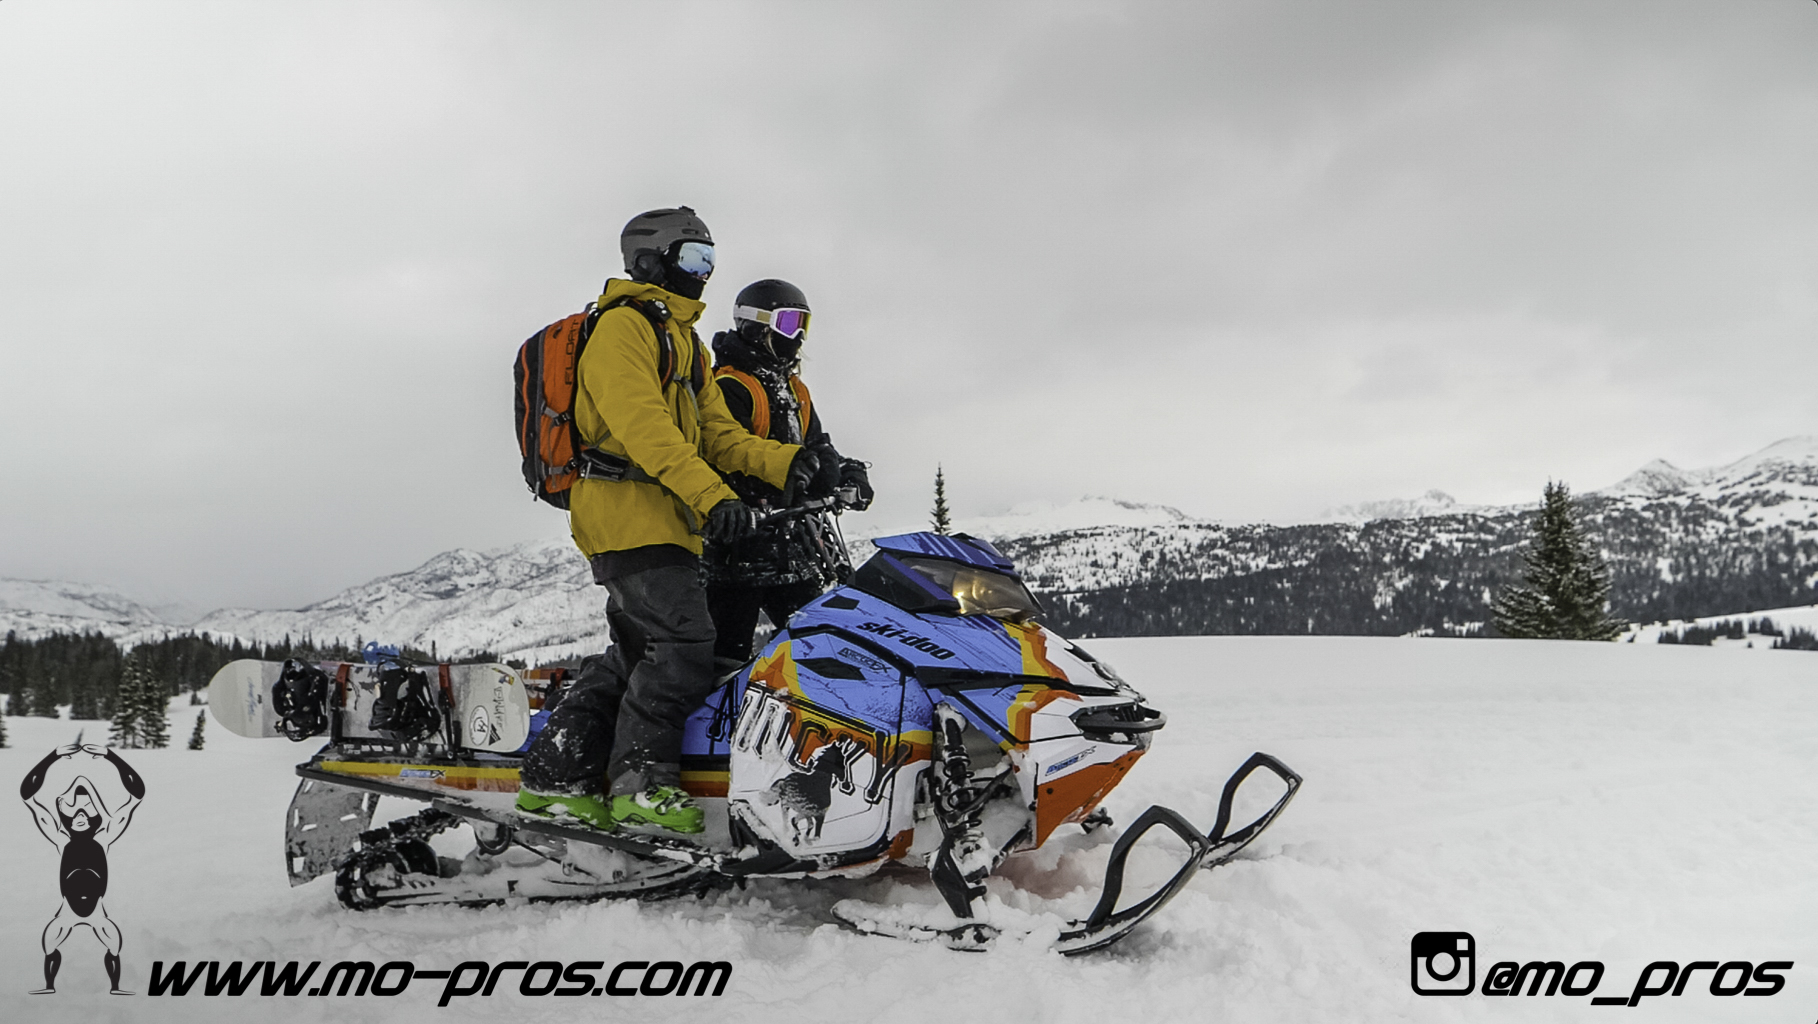 123_Backcountry _Backcountry United_CFR rack_Cheetah Factory Racing_gas Rack_Gear_Gun Rack_LinQ Snowboard Ski_Snowboard rack_snowboard_Snowboarding_snowmobile bag_Snowmobile_timbersled bag_Timbersled.jpg